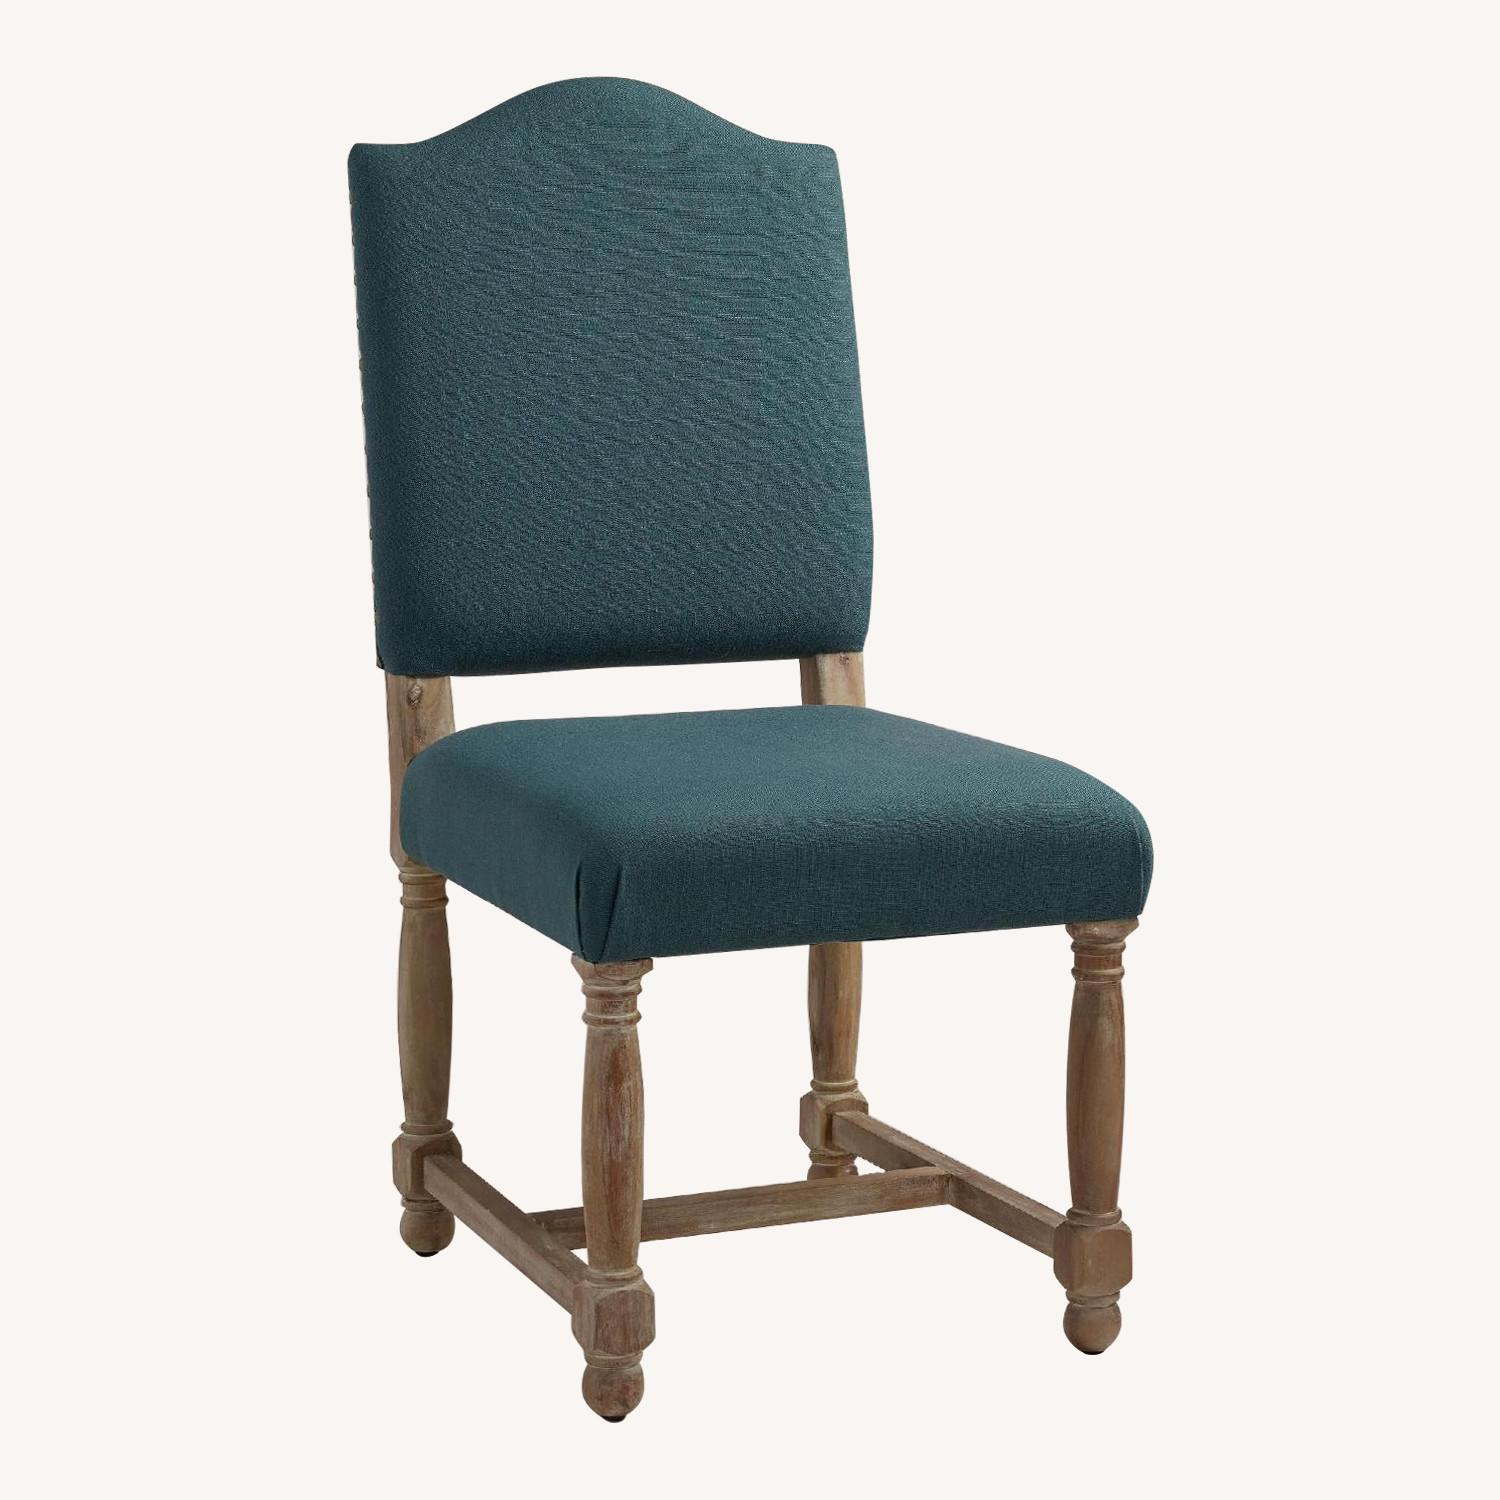 World Market Teal/blue Upholstered Accent Chair